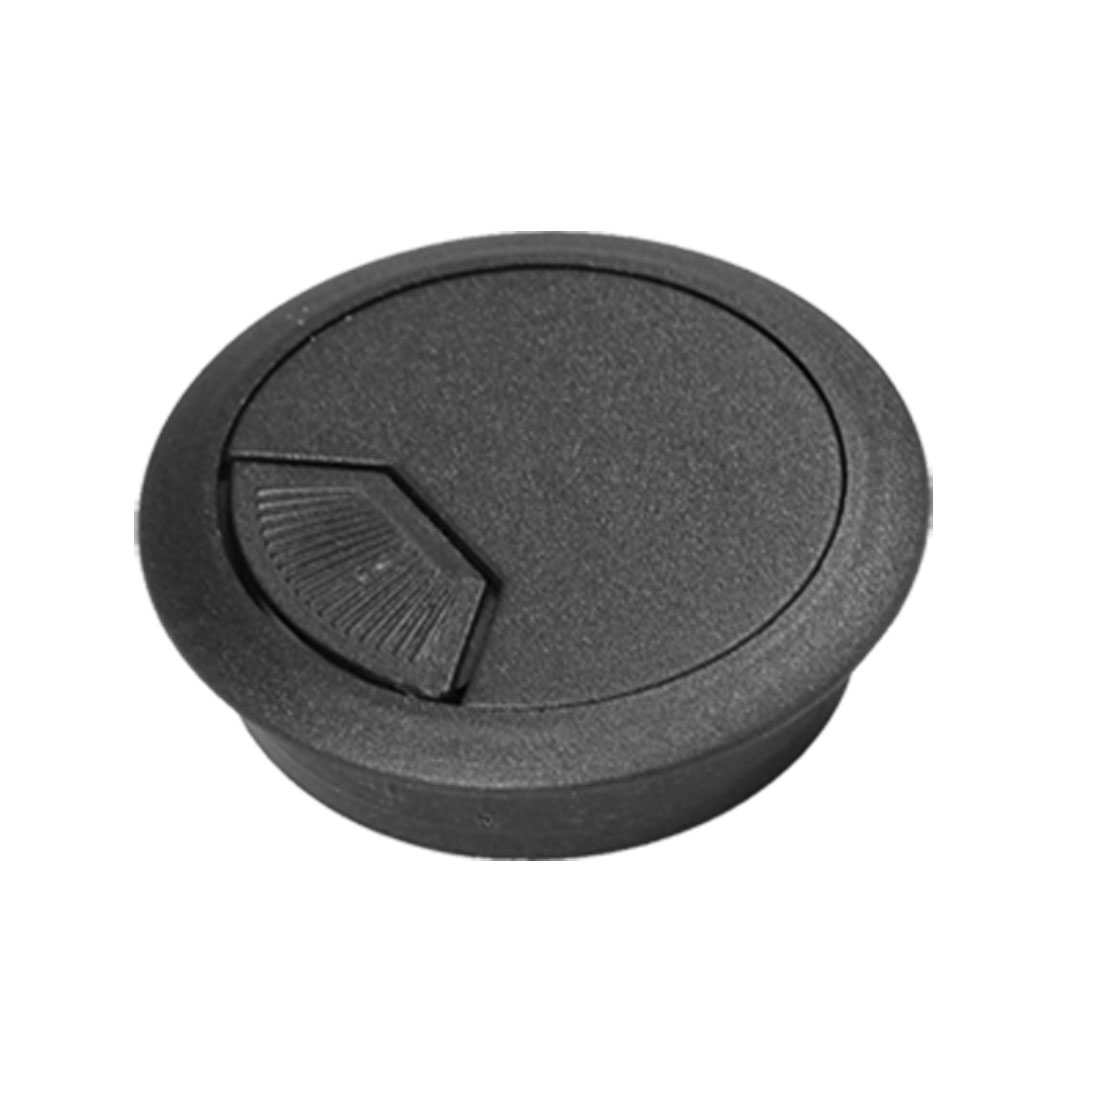 Grommet Cable Hole Cover Black for Computer Desk Table